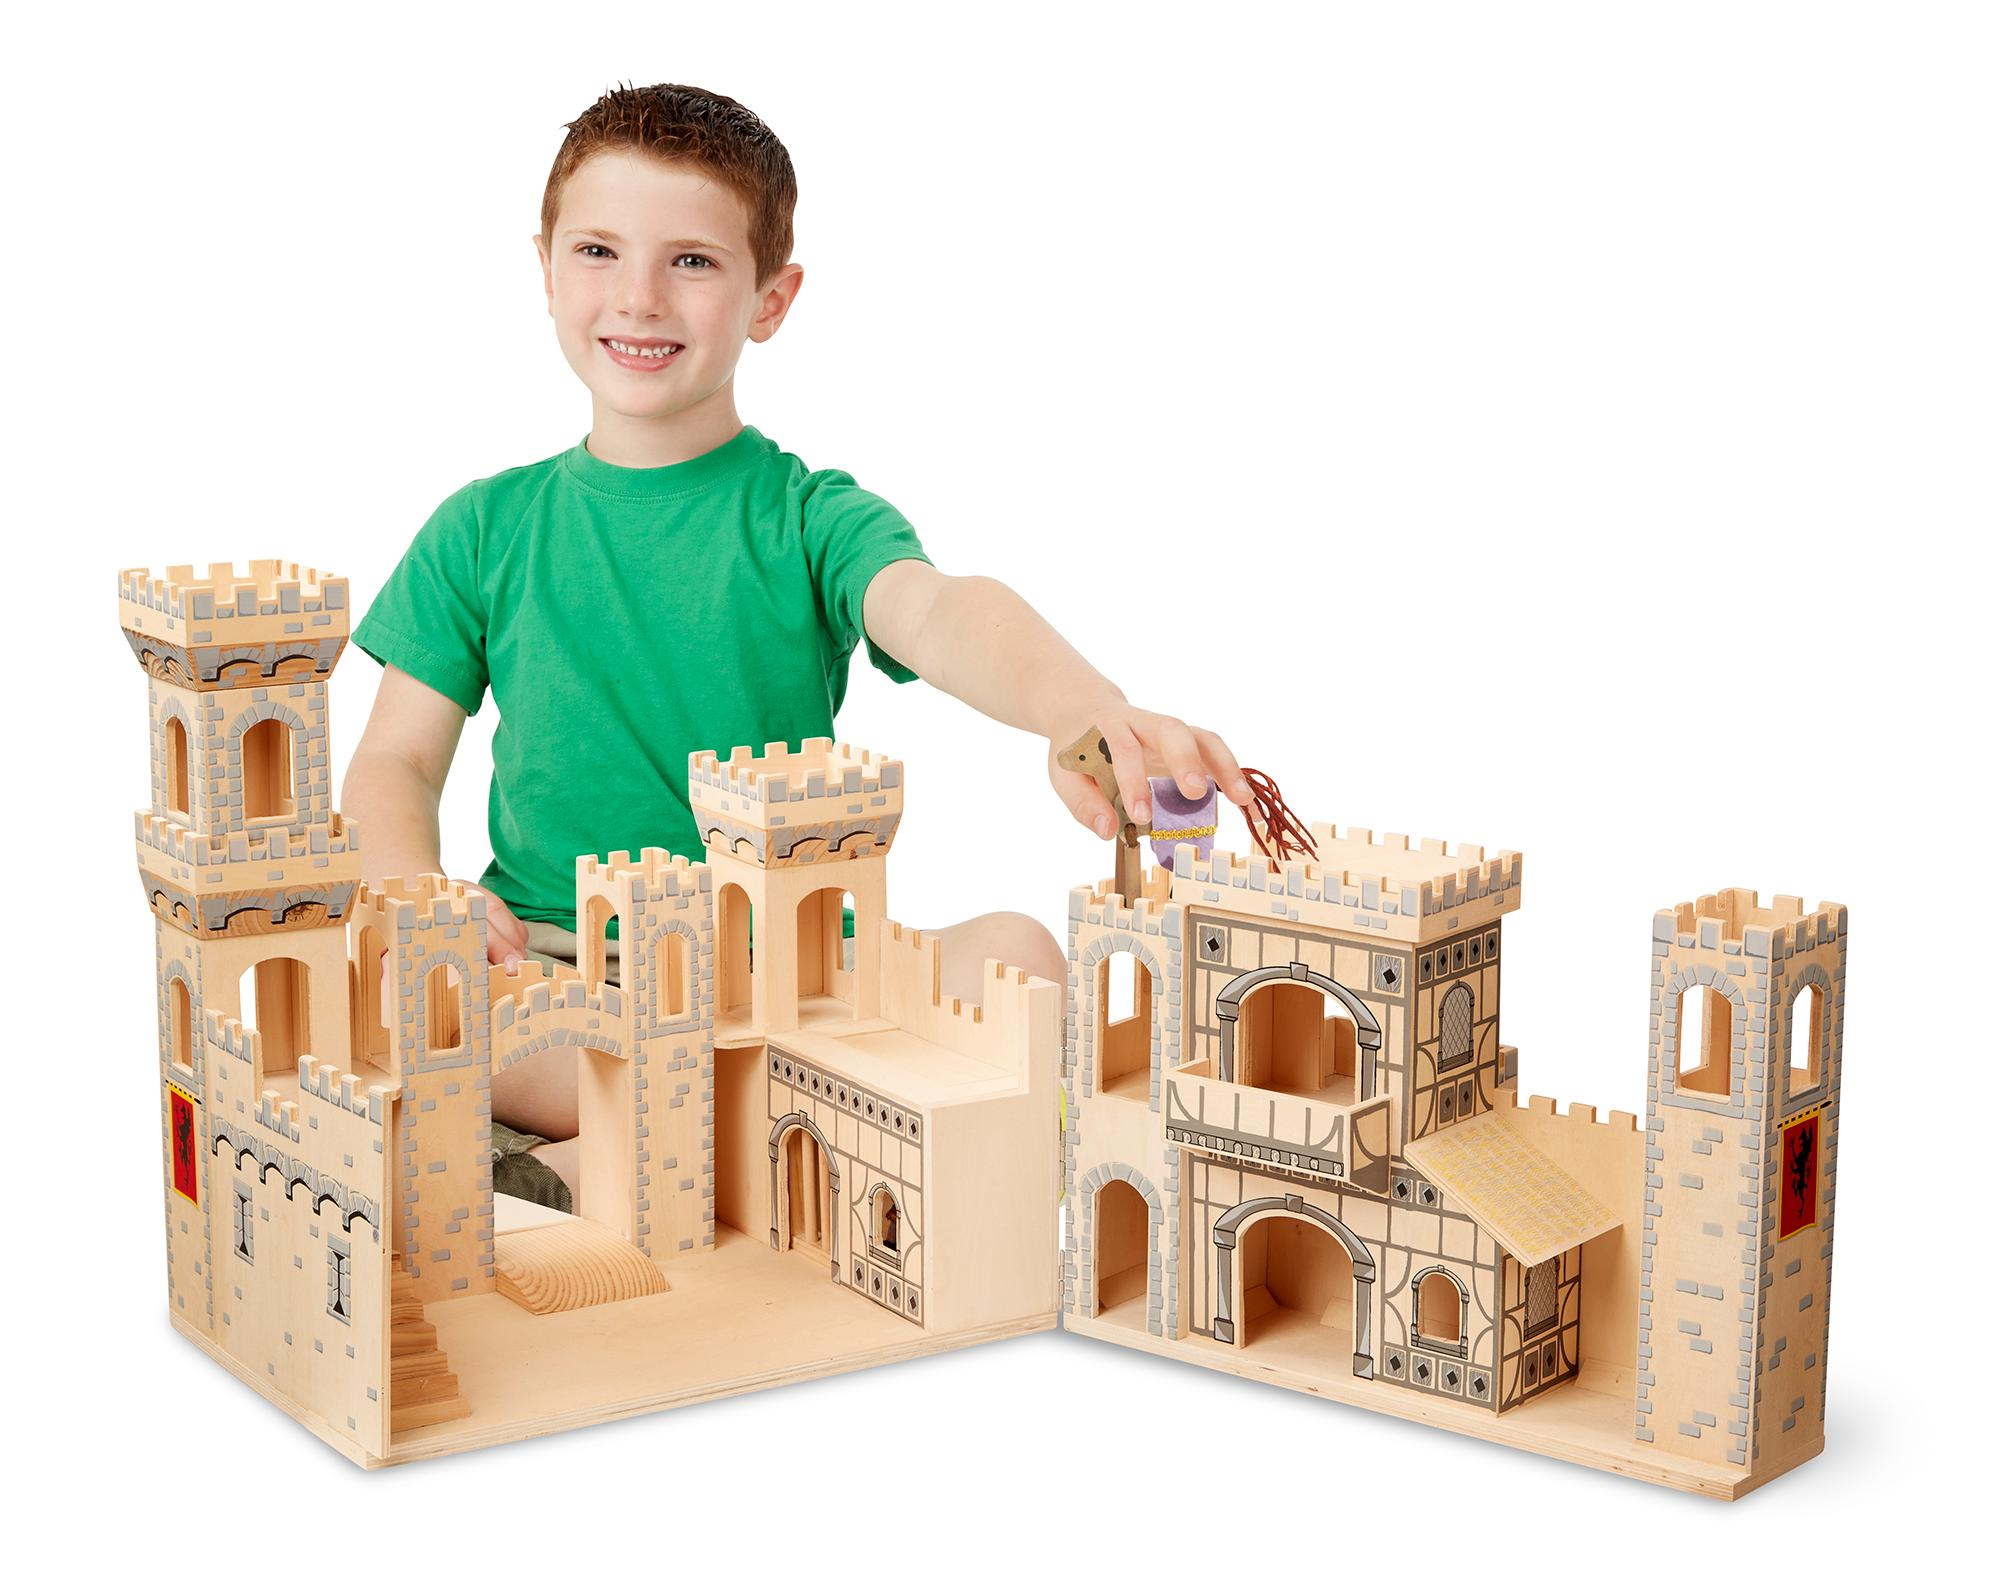 Imaginative Toys For Girls : Amazon.com: melissa & doug deluxe folding medieval wooden castle